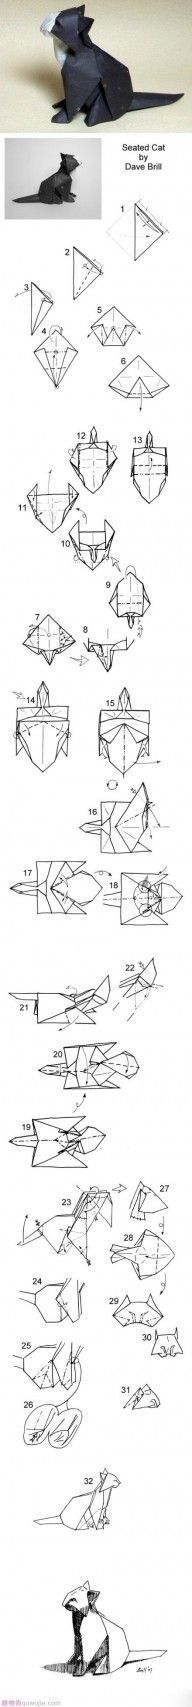 Origami Seated Cat Folding Instructions - Interior Dreams